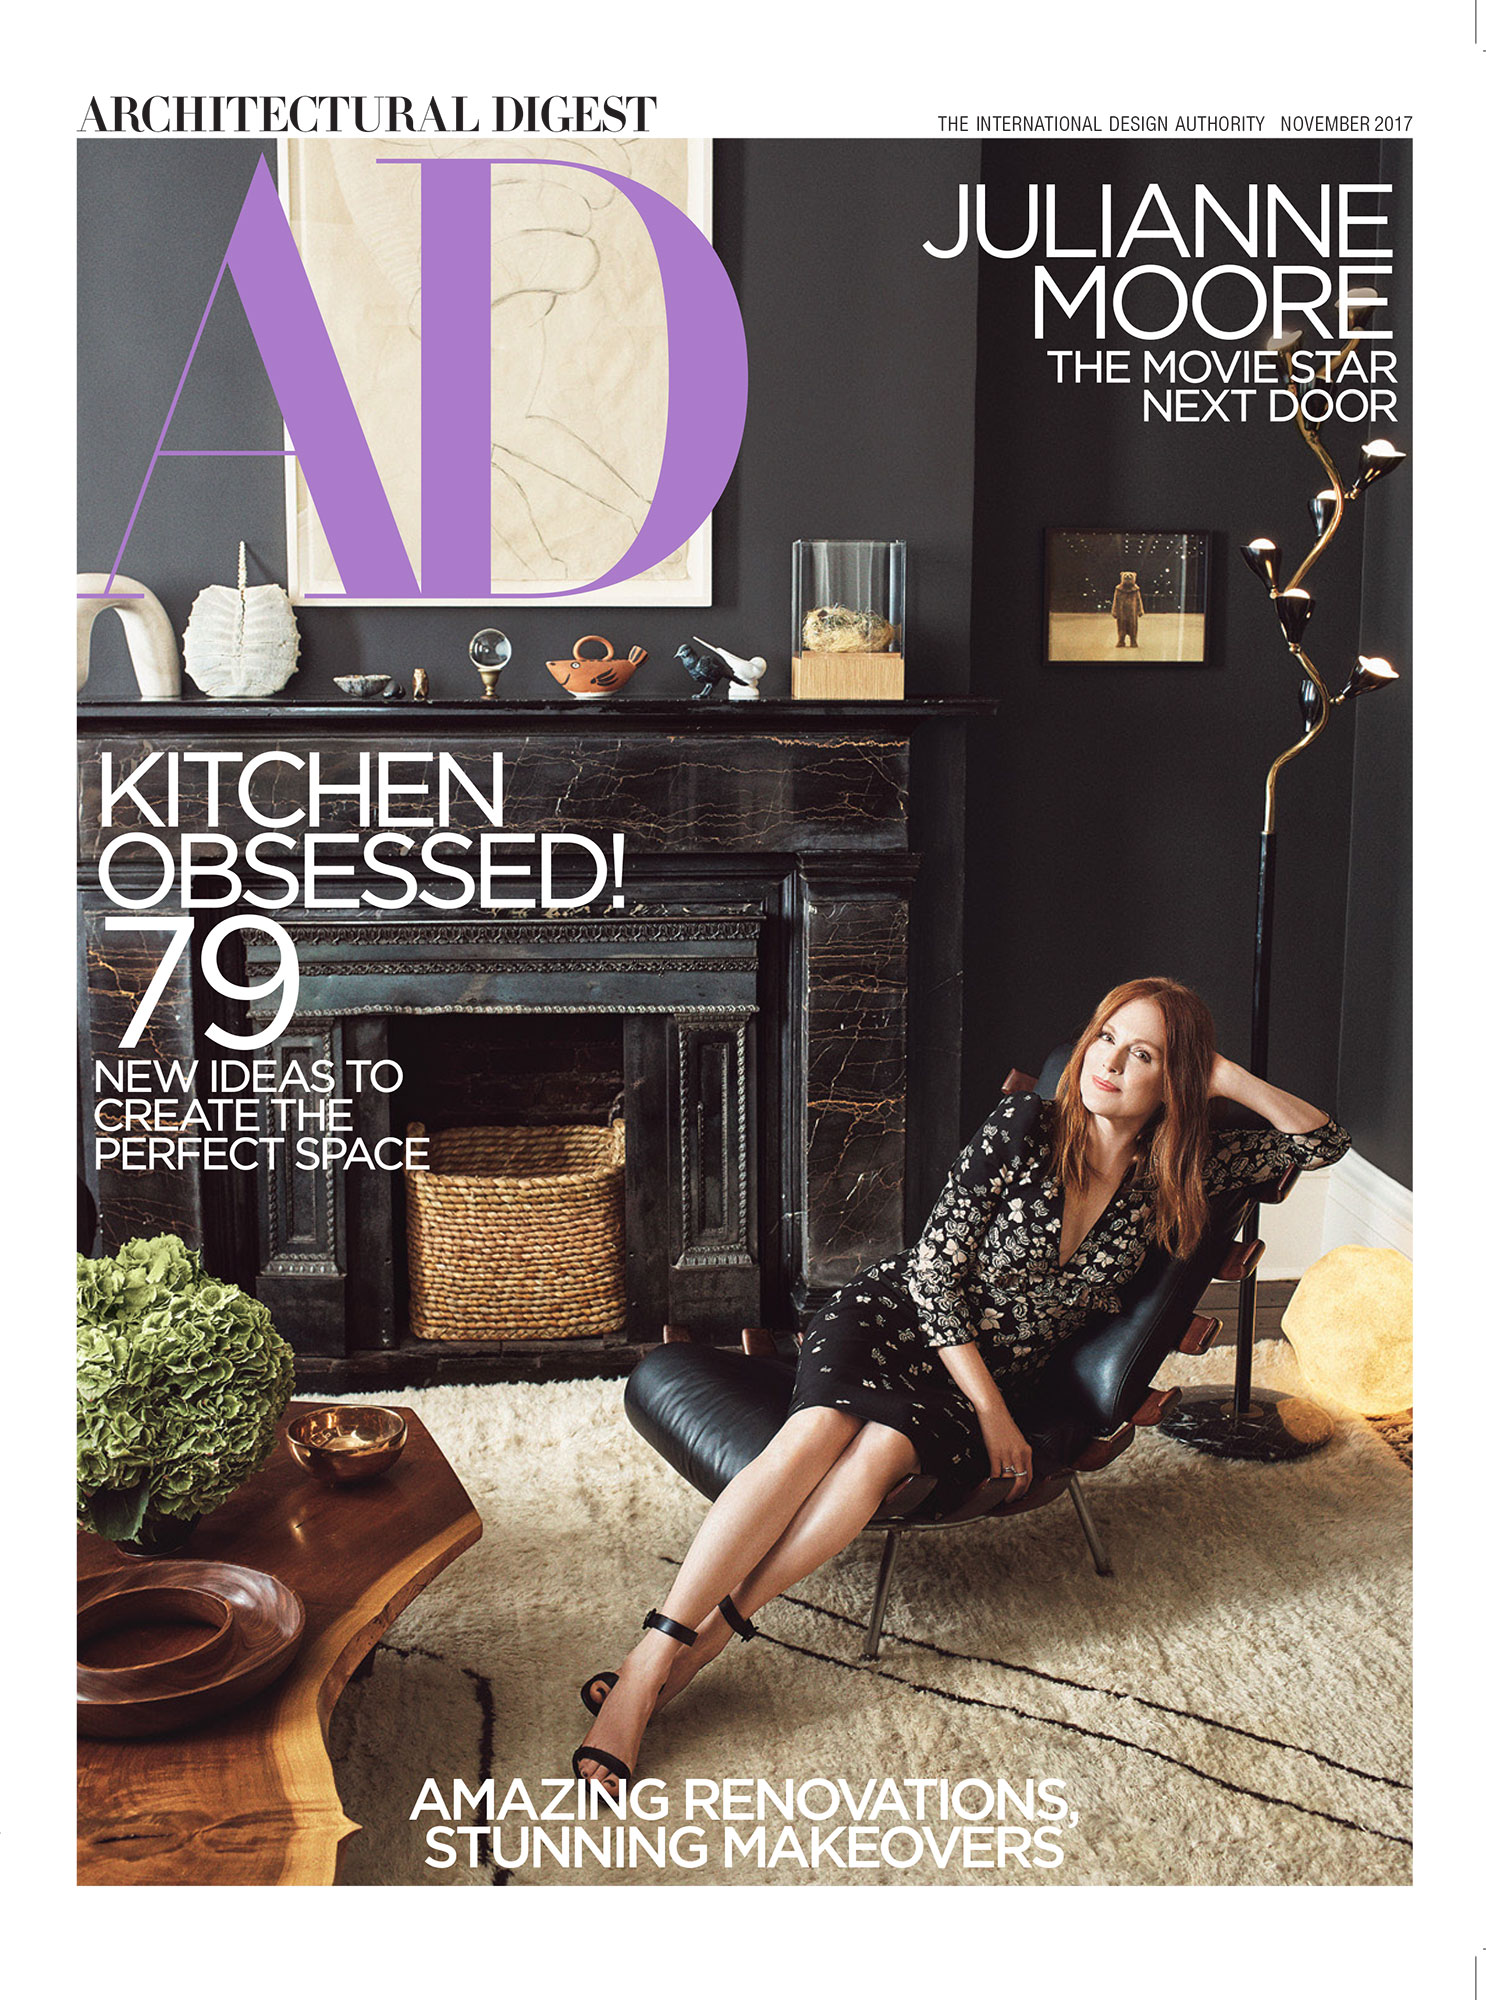 julianne-moore-house-architectural-digest-cover